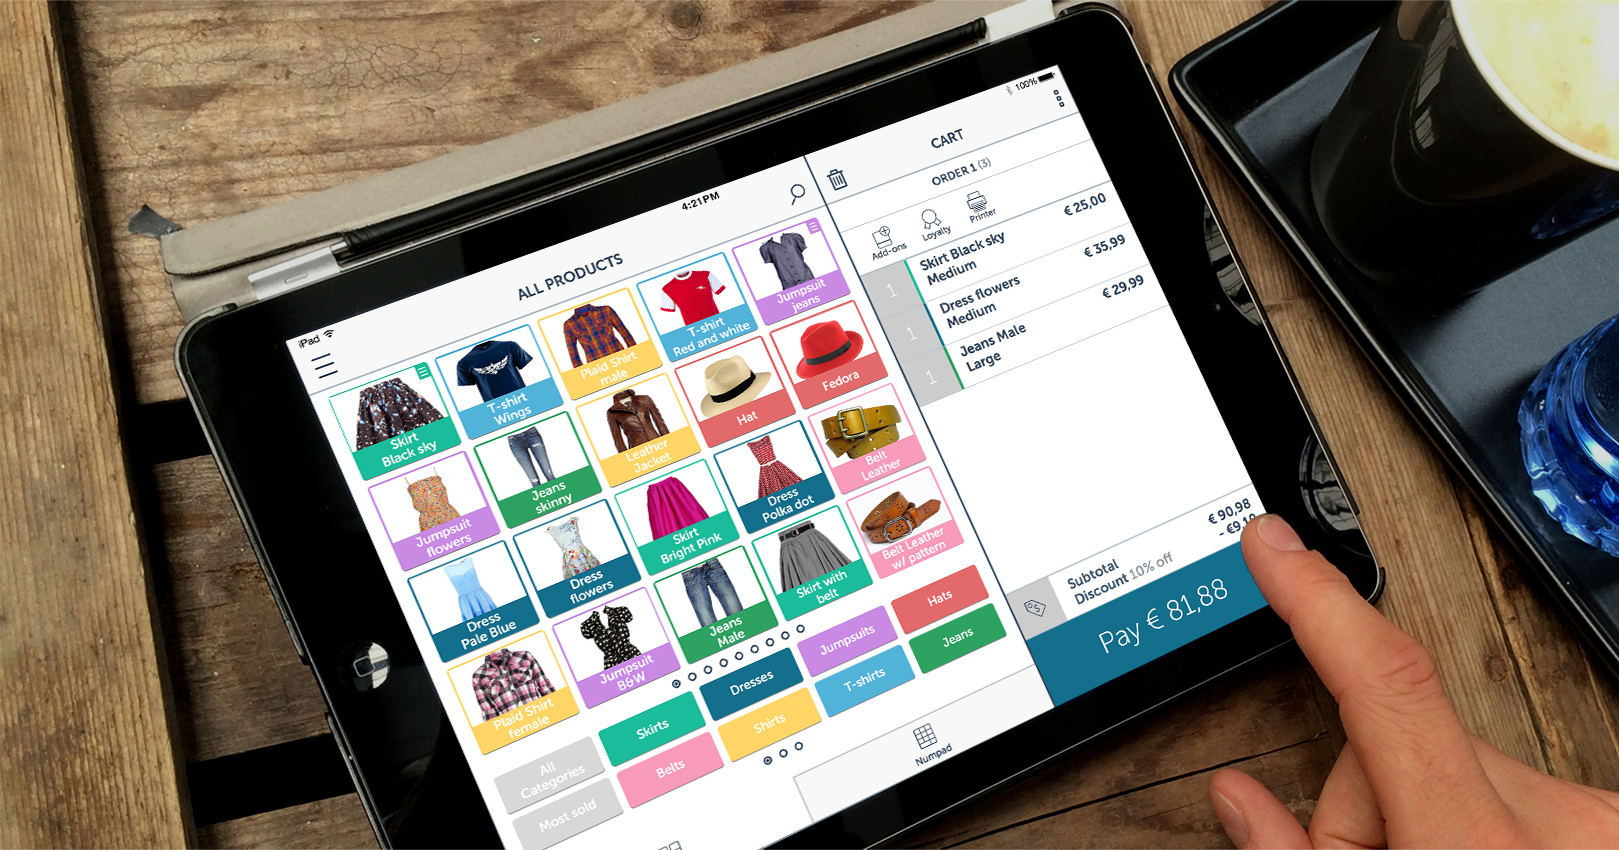 The complete retail solution: Cash Register, Mobile POS, inventory management, omnichannel, retail reporting and more...